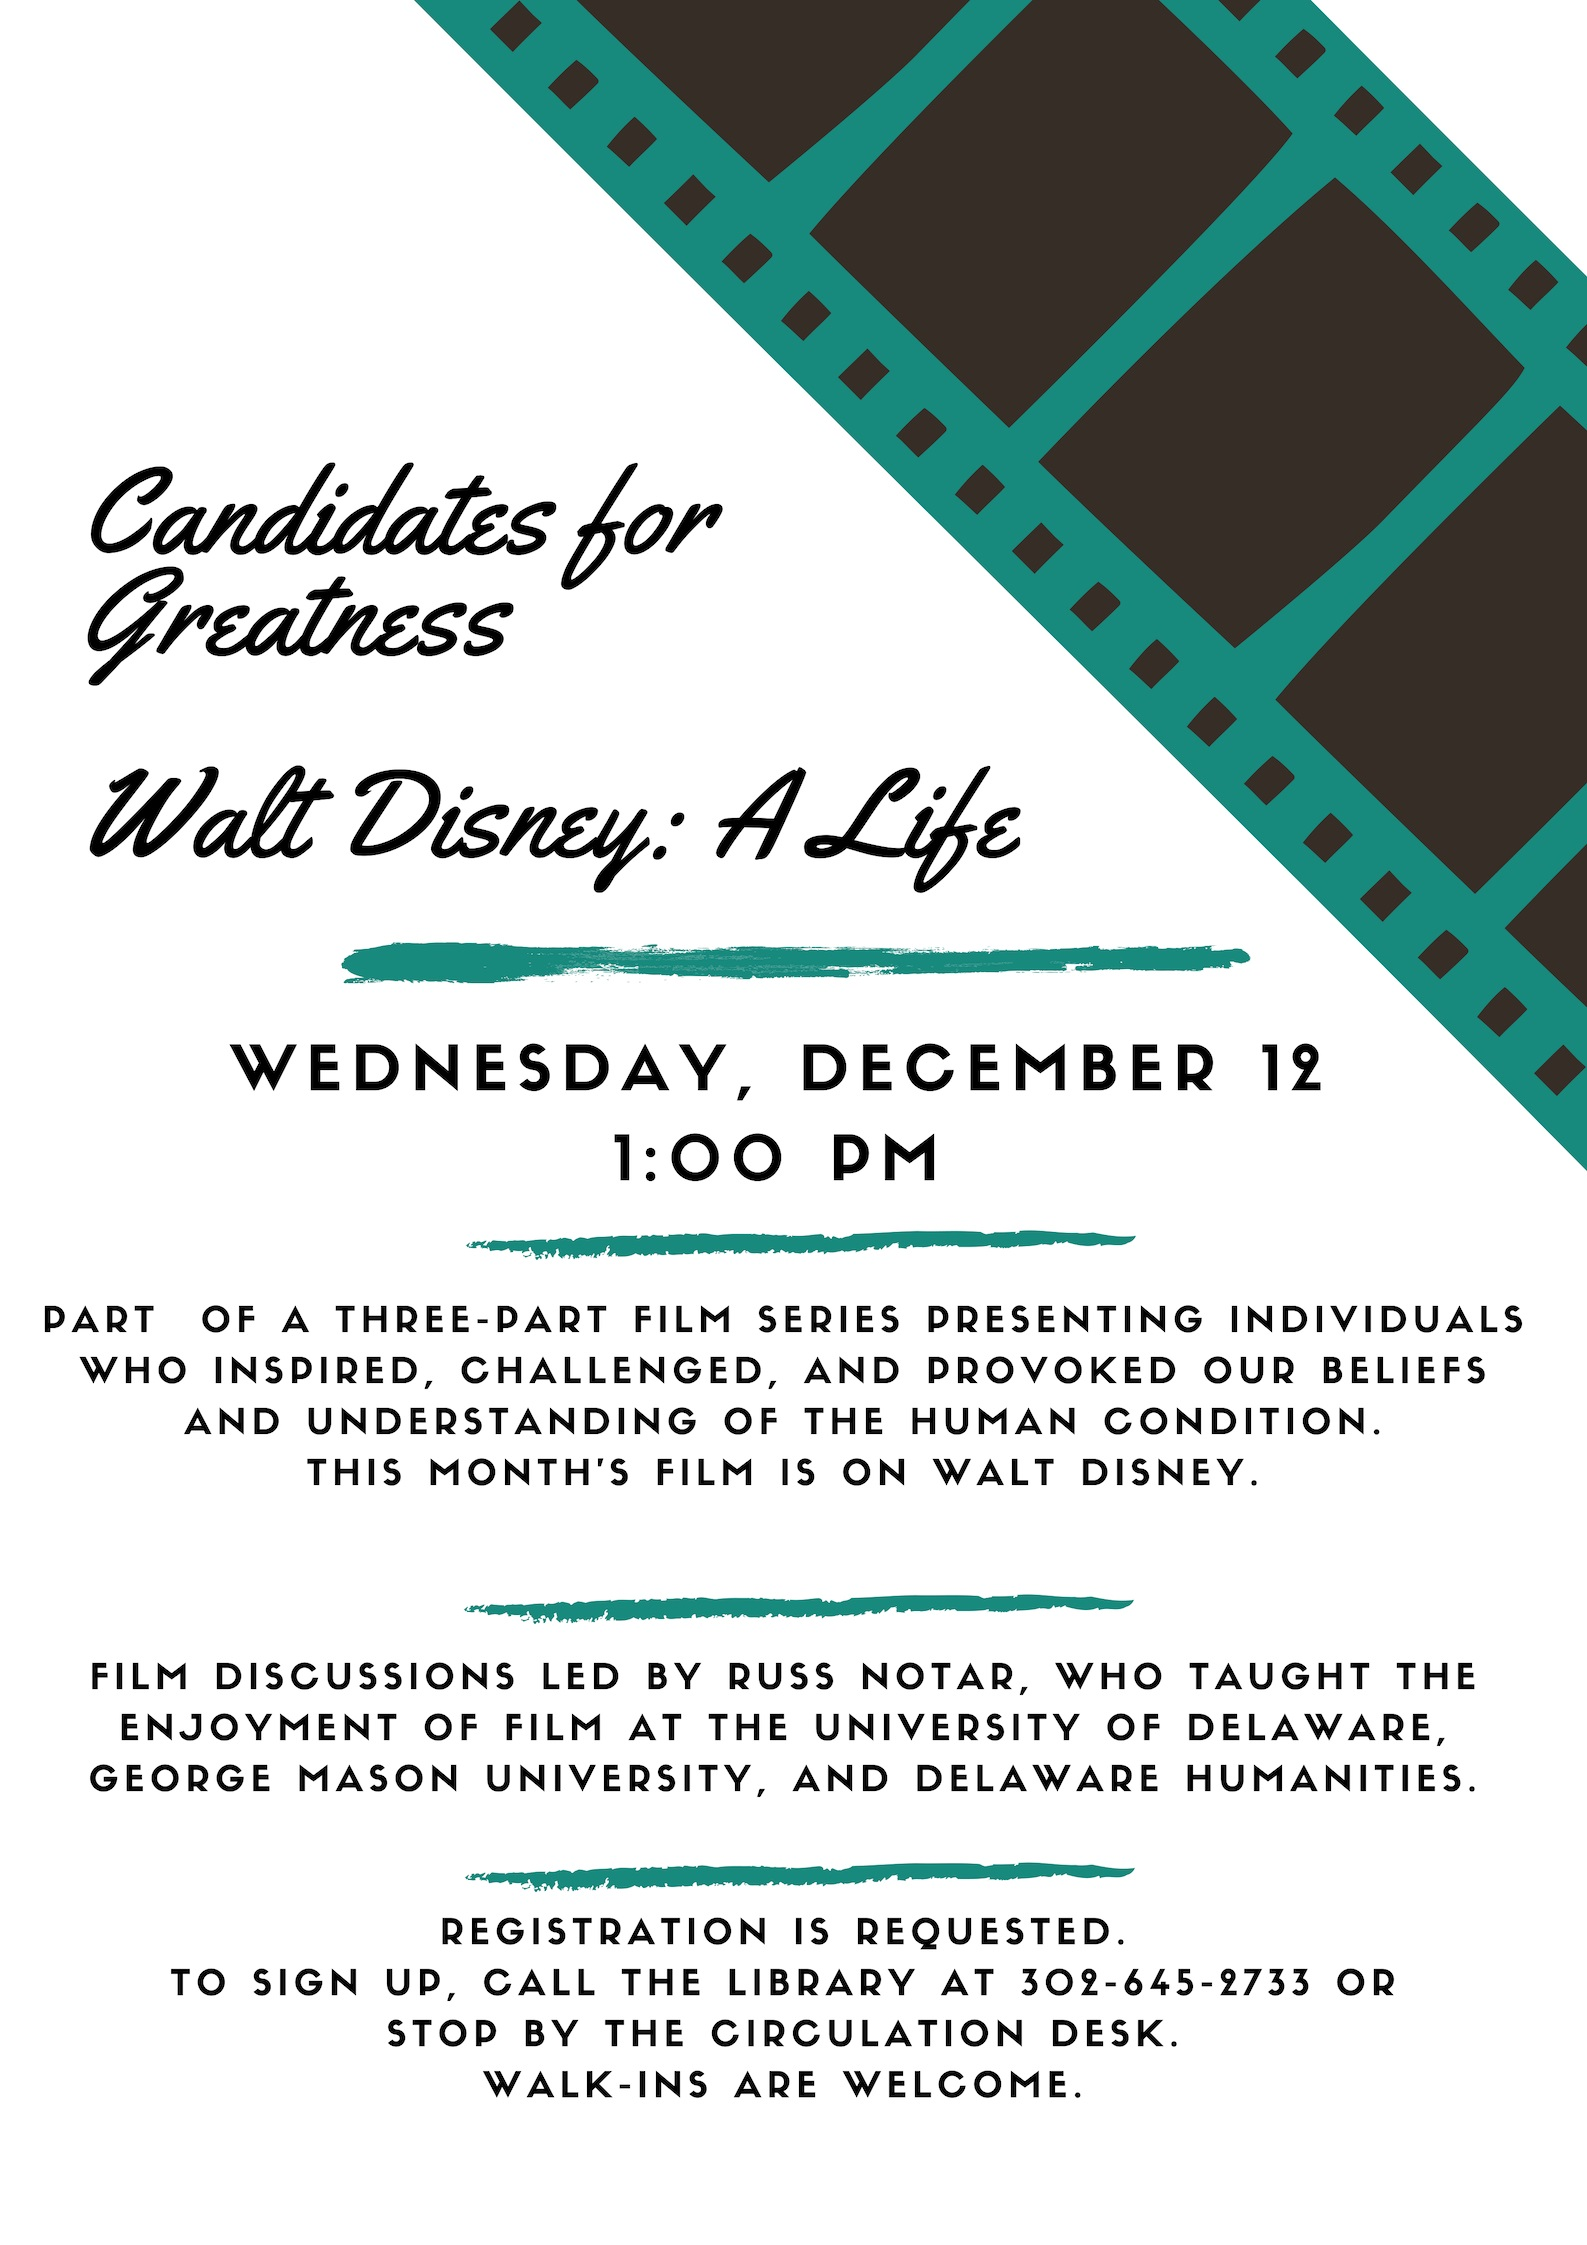 Candidates for Greatness, Session 3 - Walt Disney